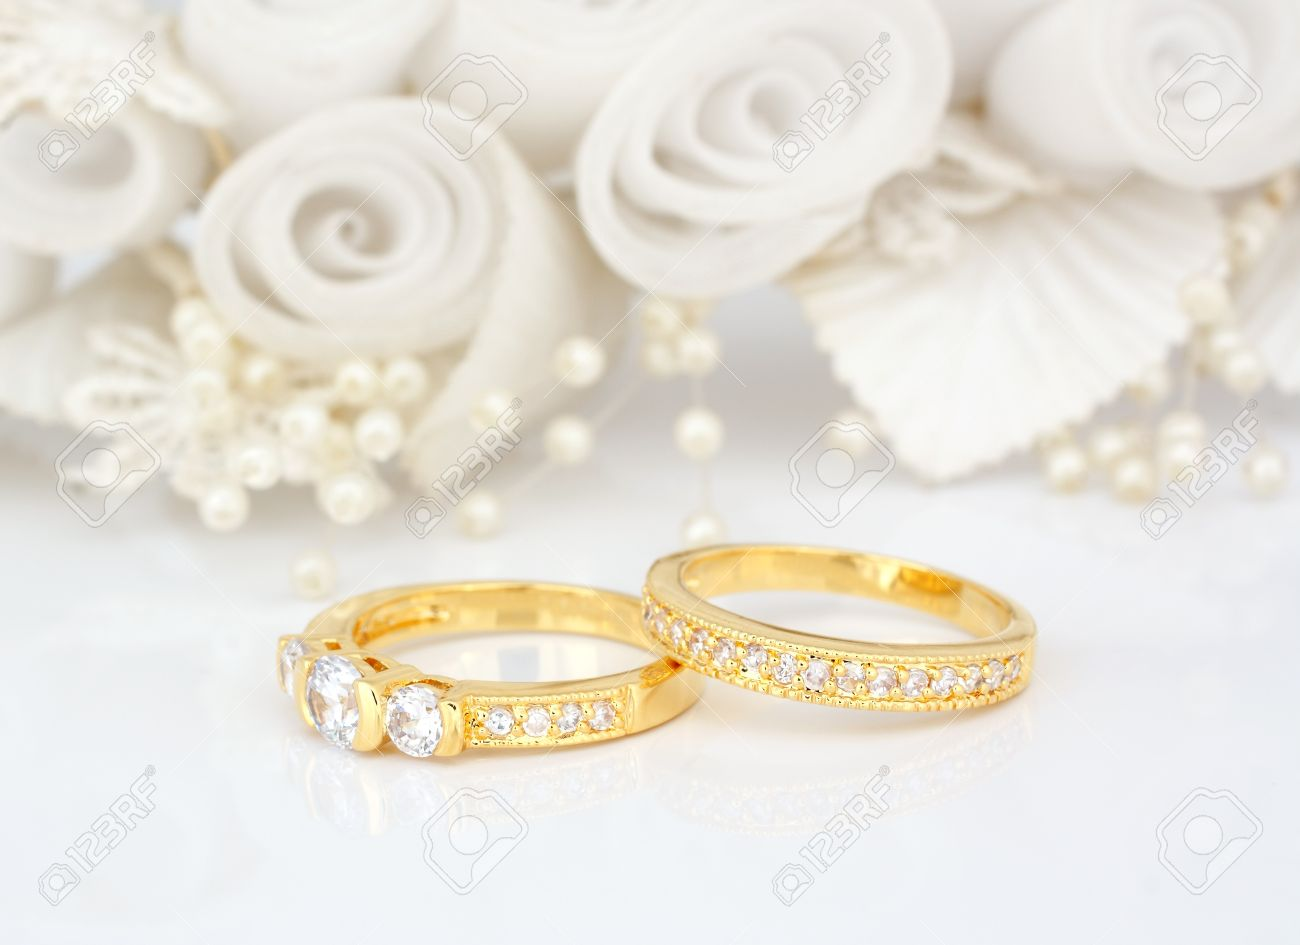 gold ring art rings engagement deco flower styled unique sneualx designed floral design diamond wedding cute white